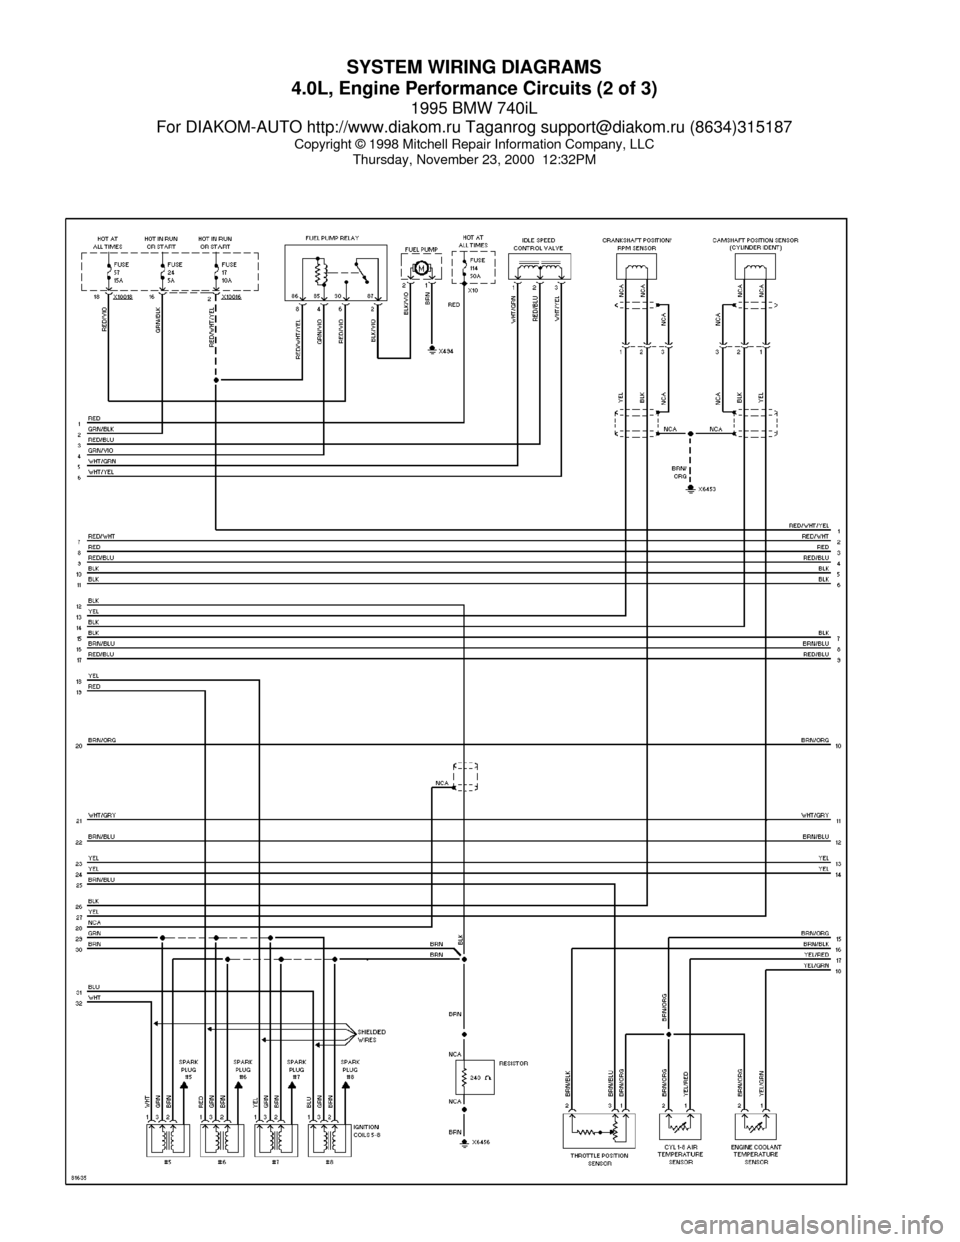 [TVPR_3874]  BMW 740il 1995 E38 System Wiring Diagrams (60 Pages) | 1998 Bmw 740i Wiring Diagram |  | Car Manuals Online